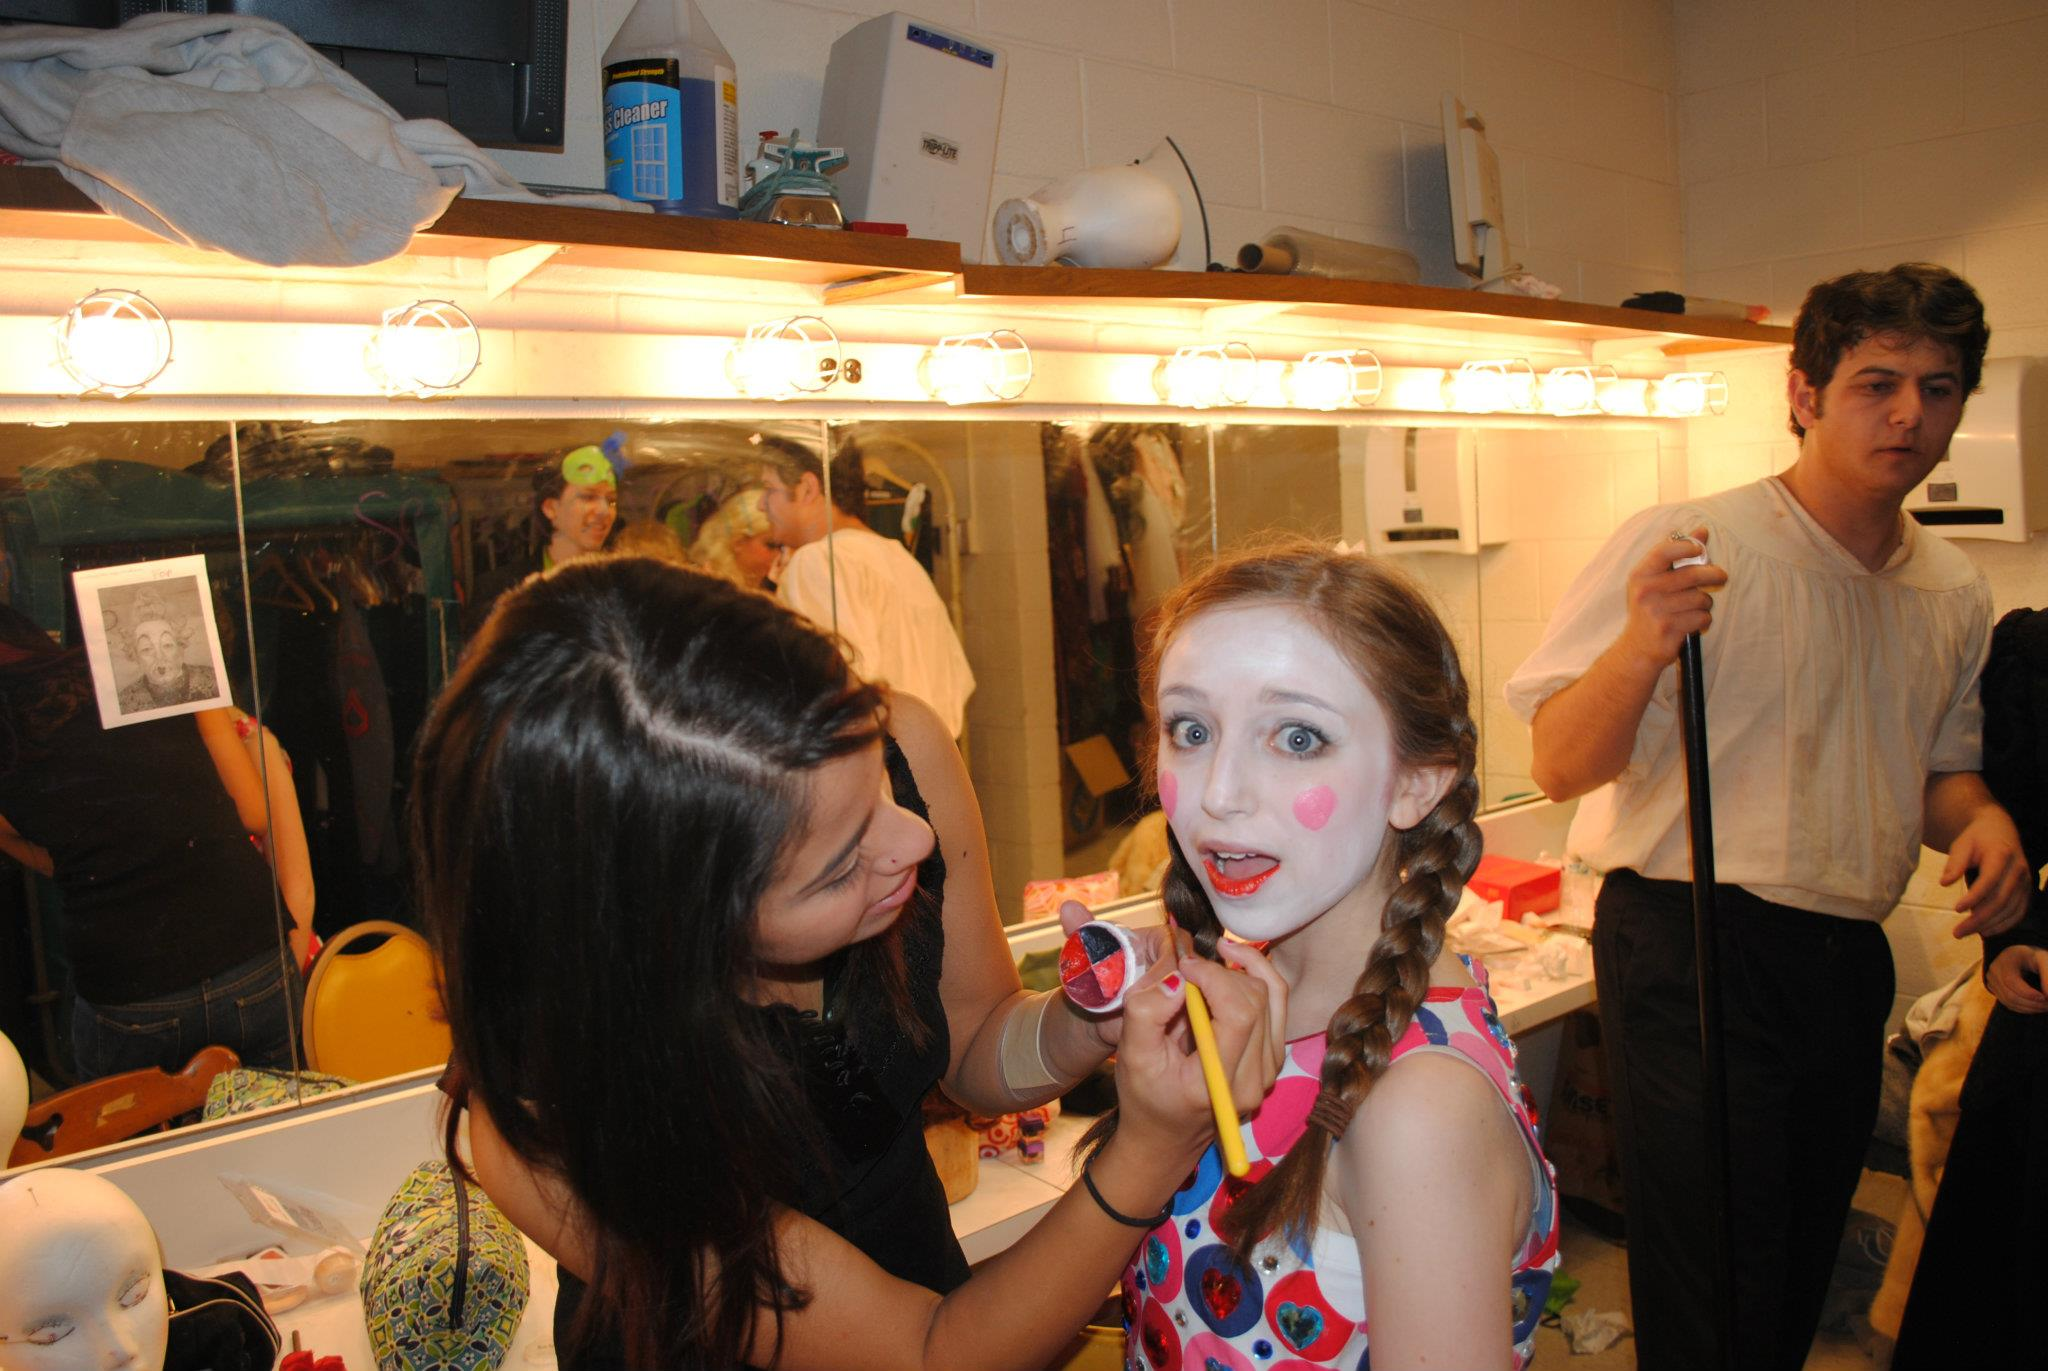 Me, in the early days of my passion for makeup doing makeup for my high school's theatre department